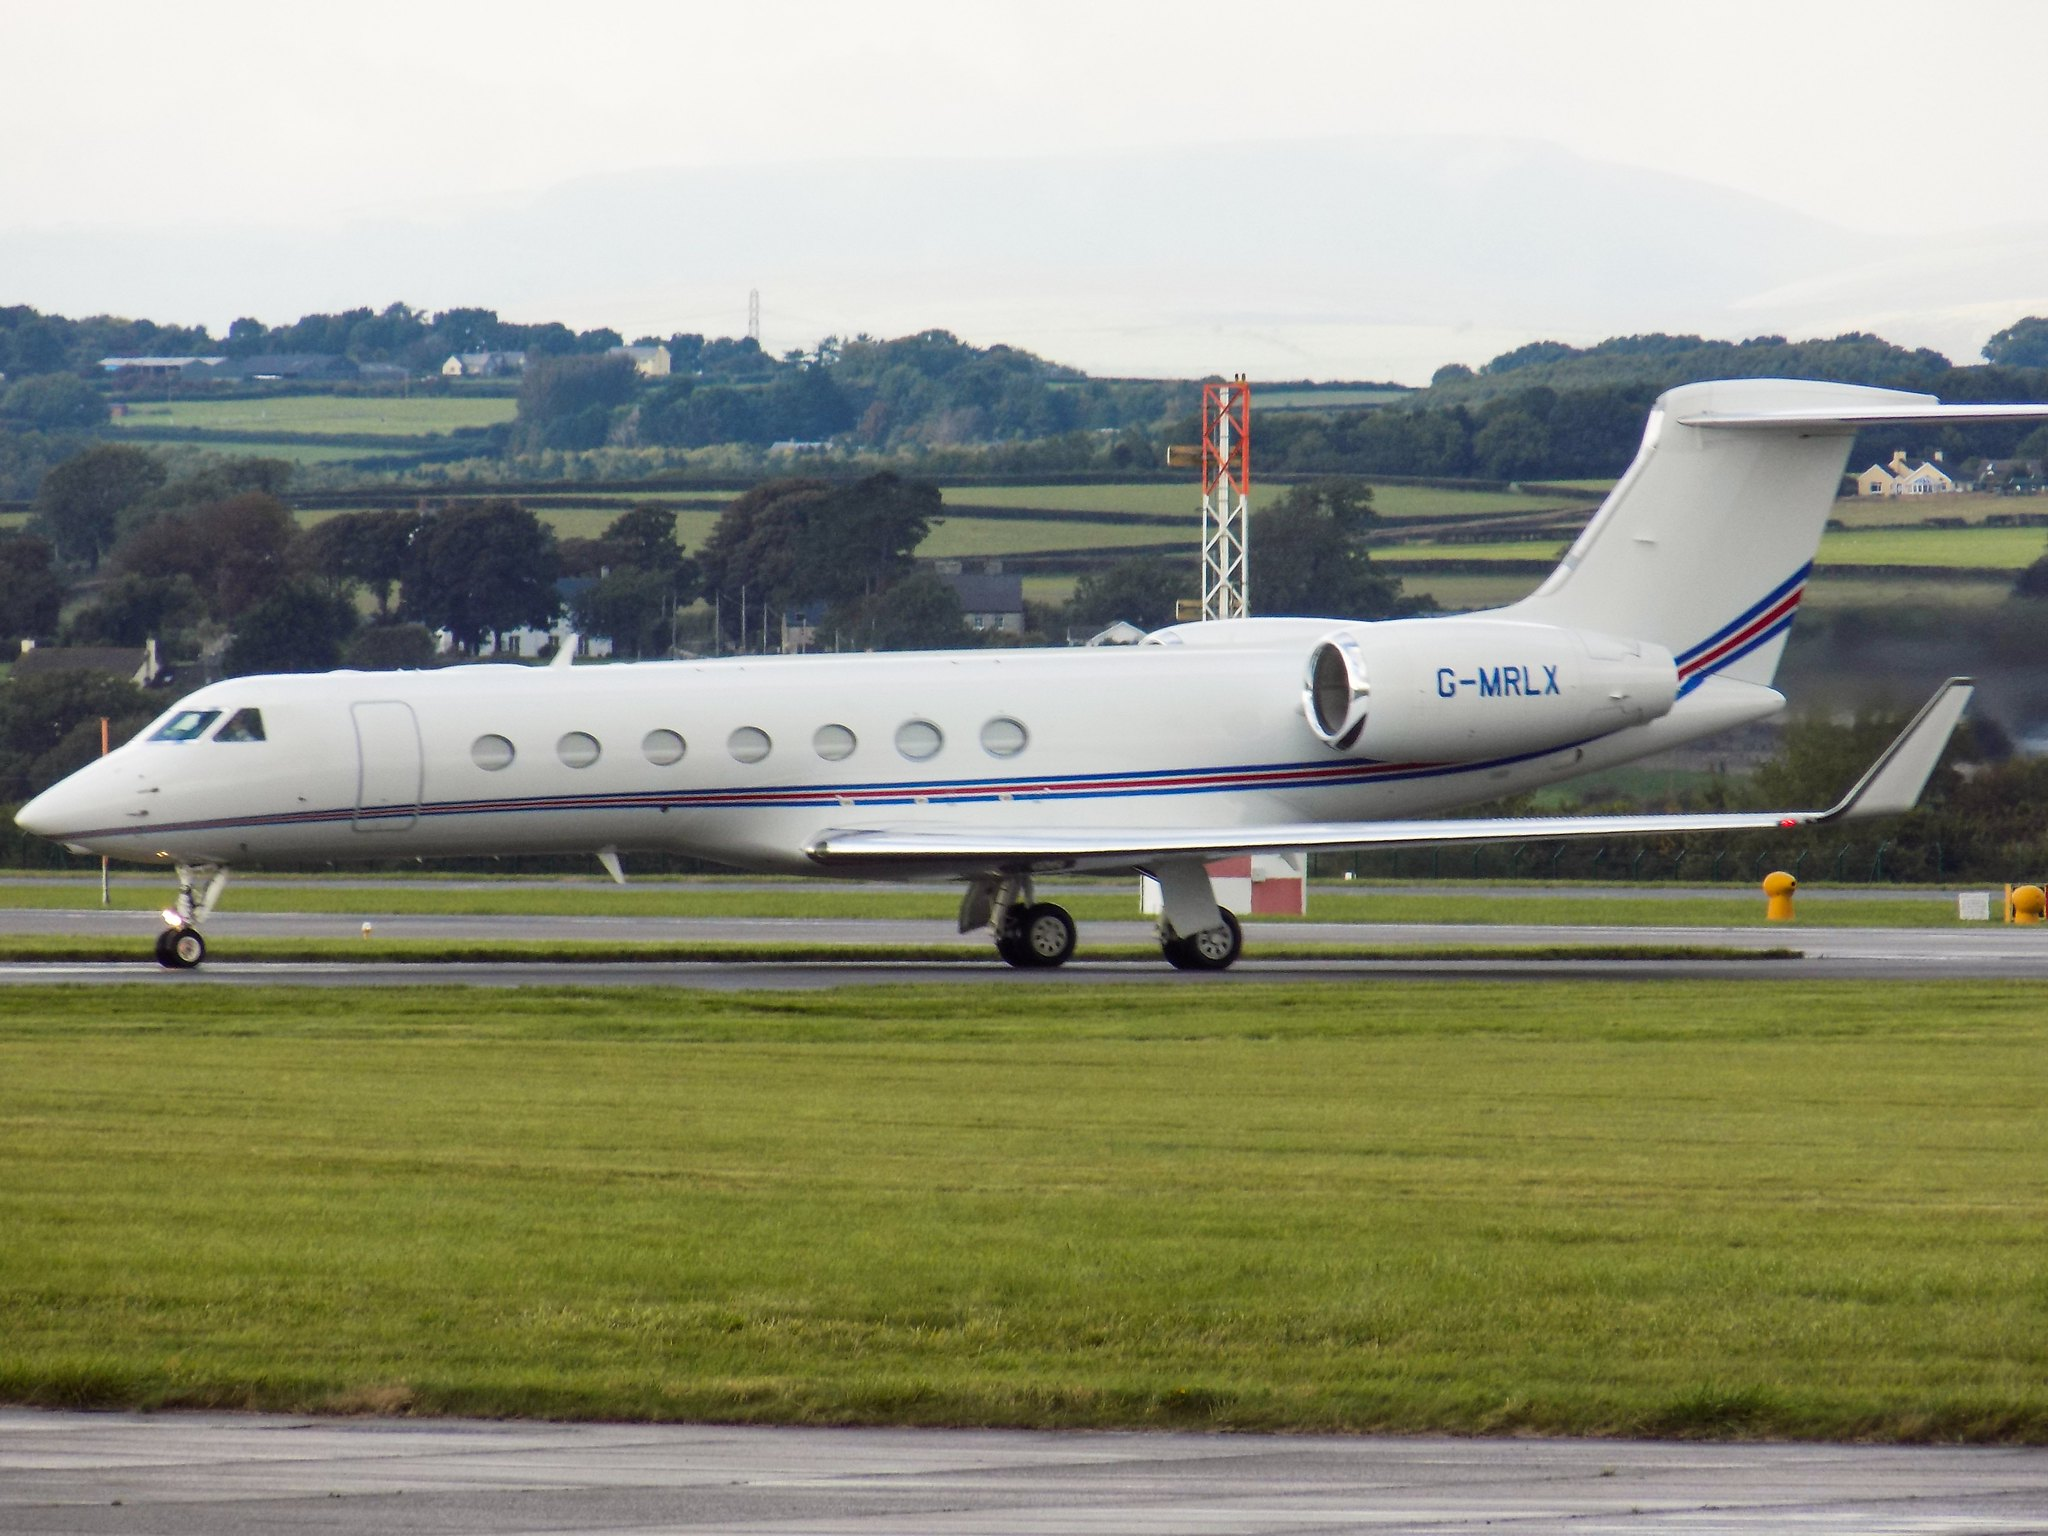 Gulfstream G550 G-MRLX (Angelo Harsmworth)